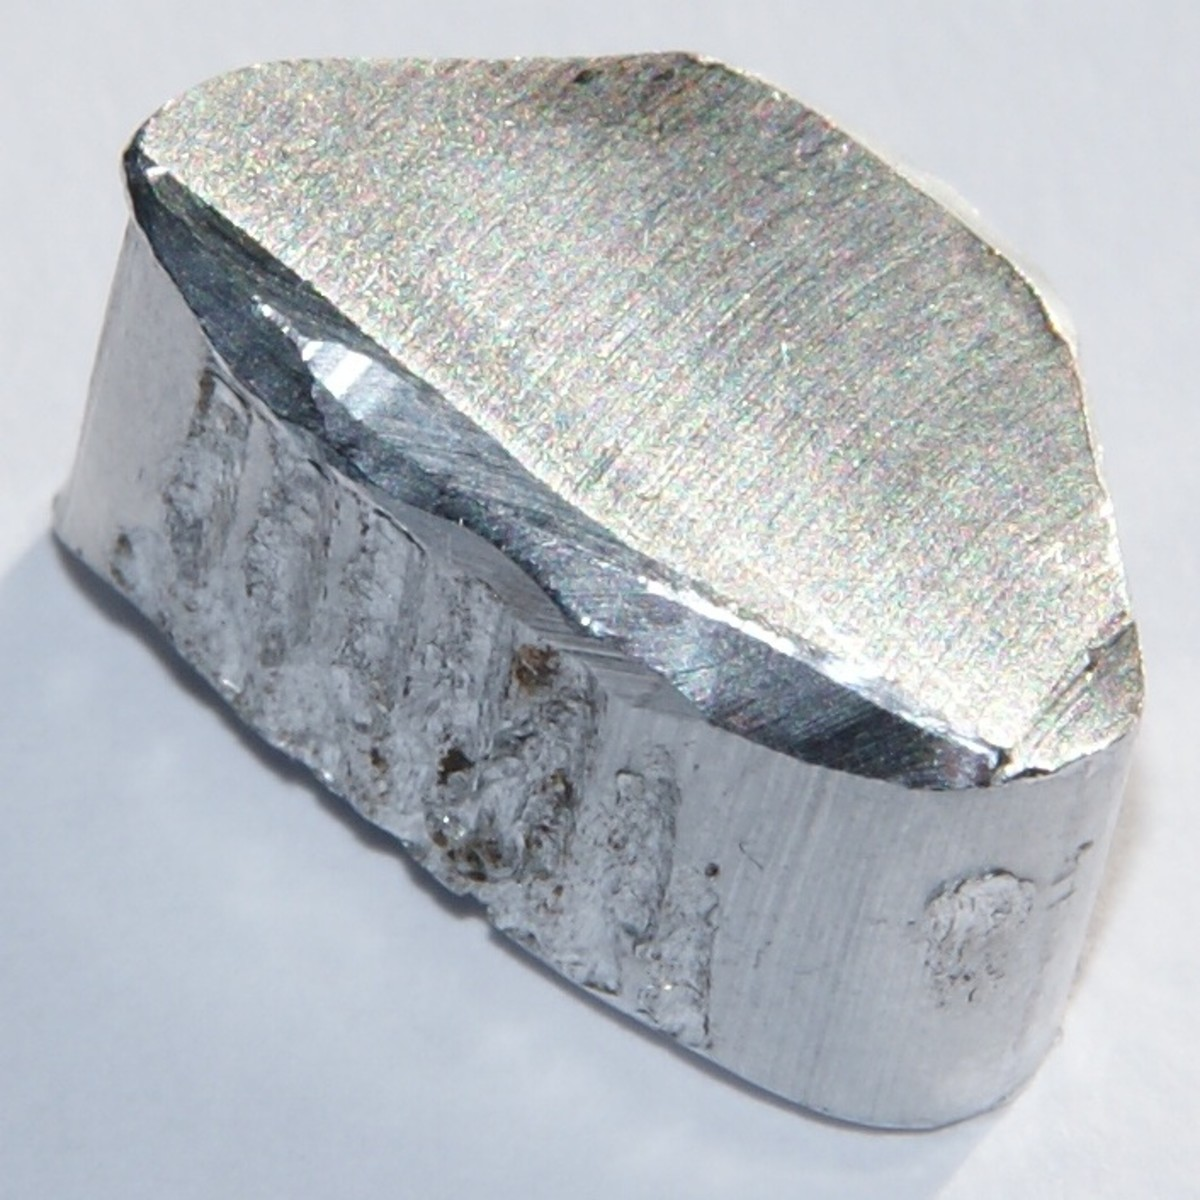 Chunk of aluminium, 2.6 grams, 1 x 2 cm.